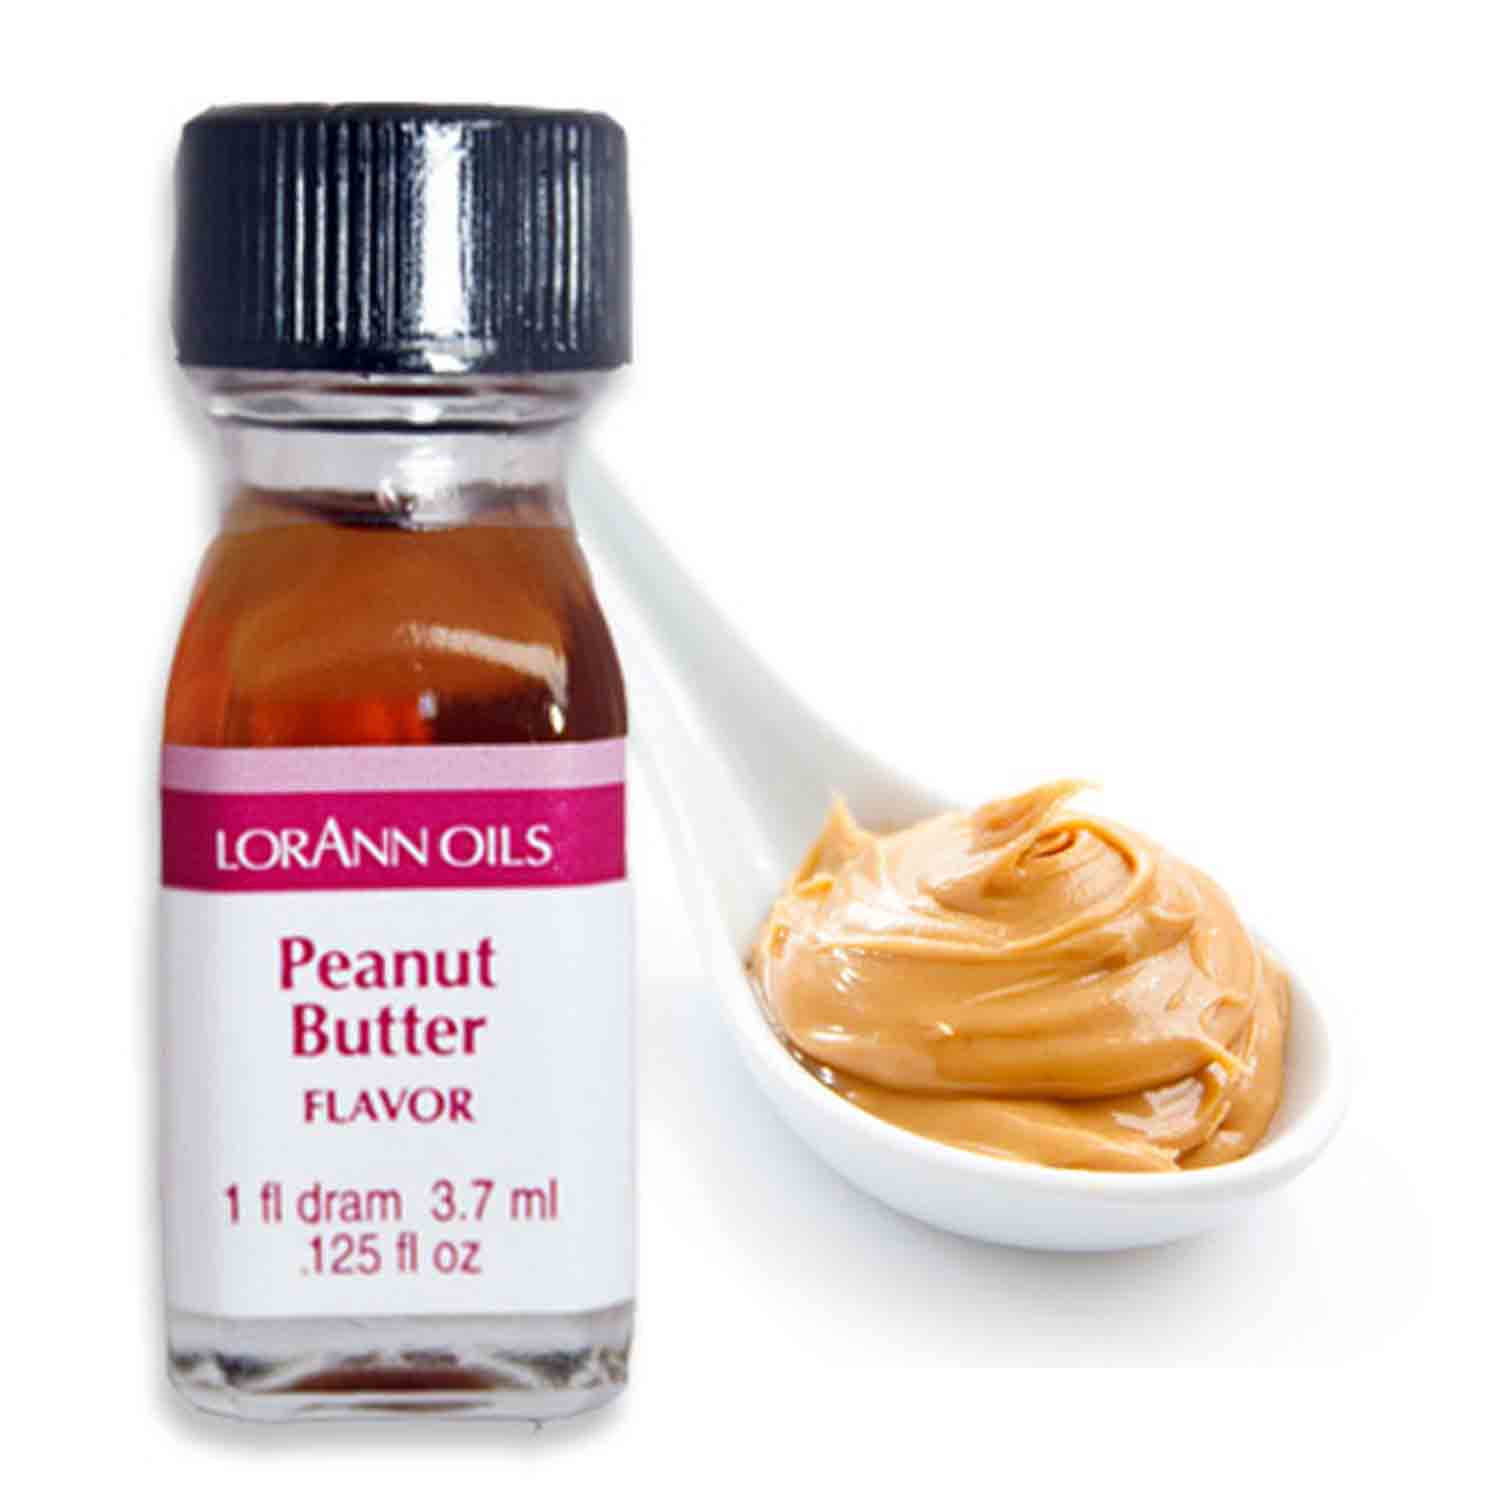 Peanut Butter Super-Strength Flavor